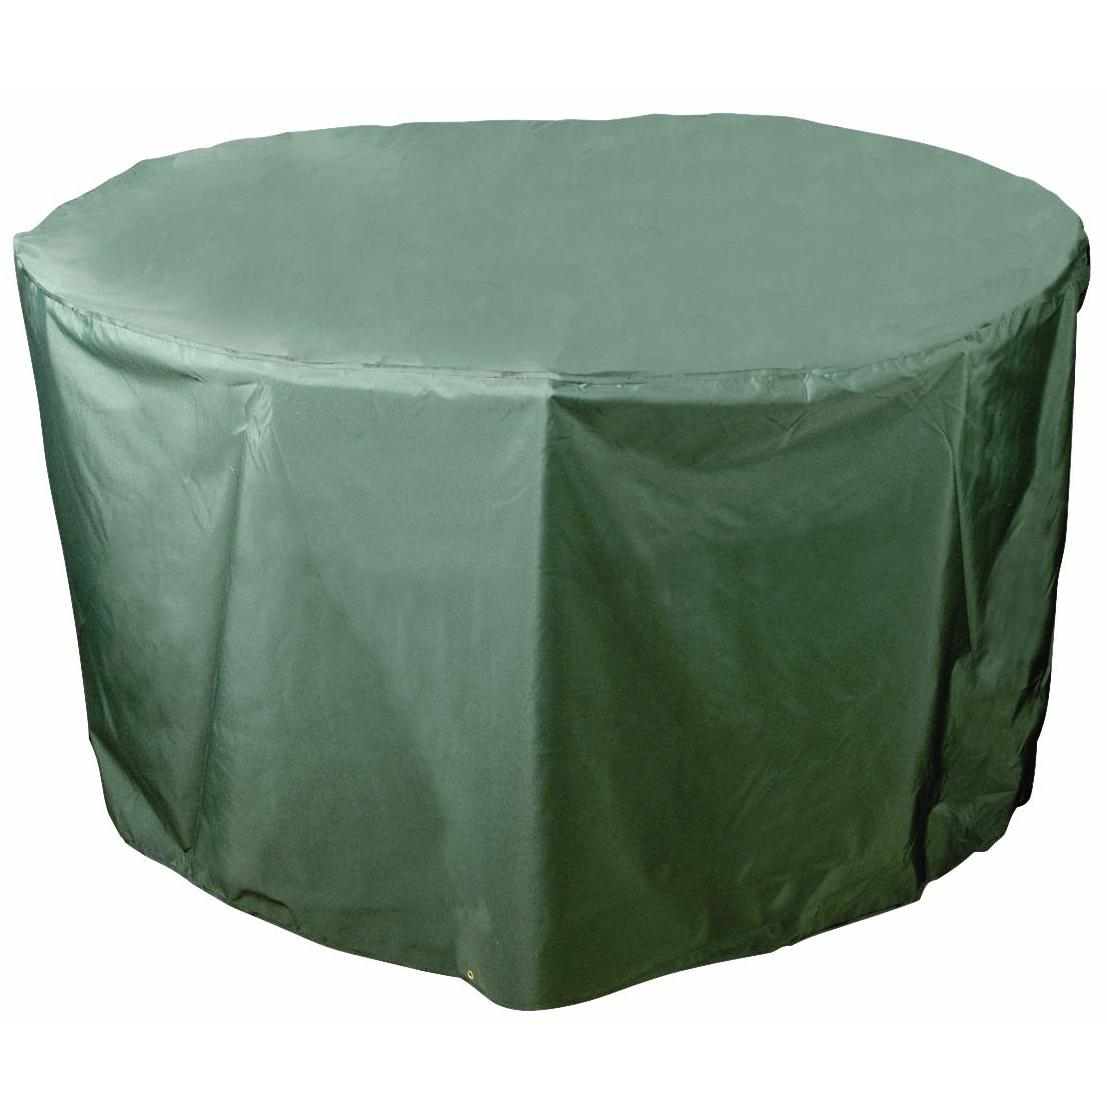 Tesco Garden Furniture Cover Round 124cm  1999  Oypla